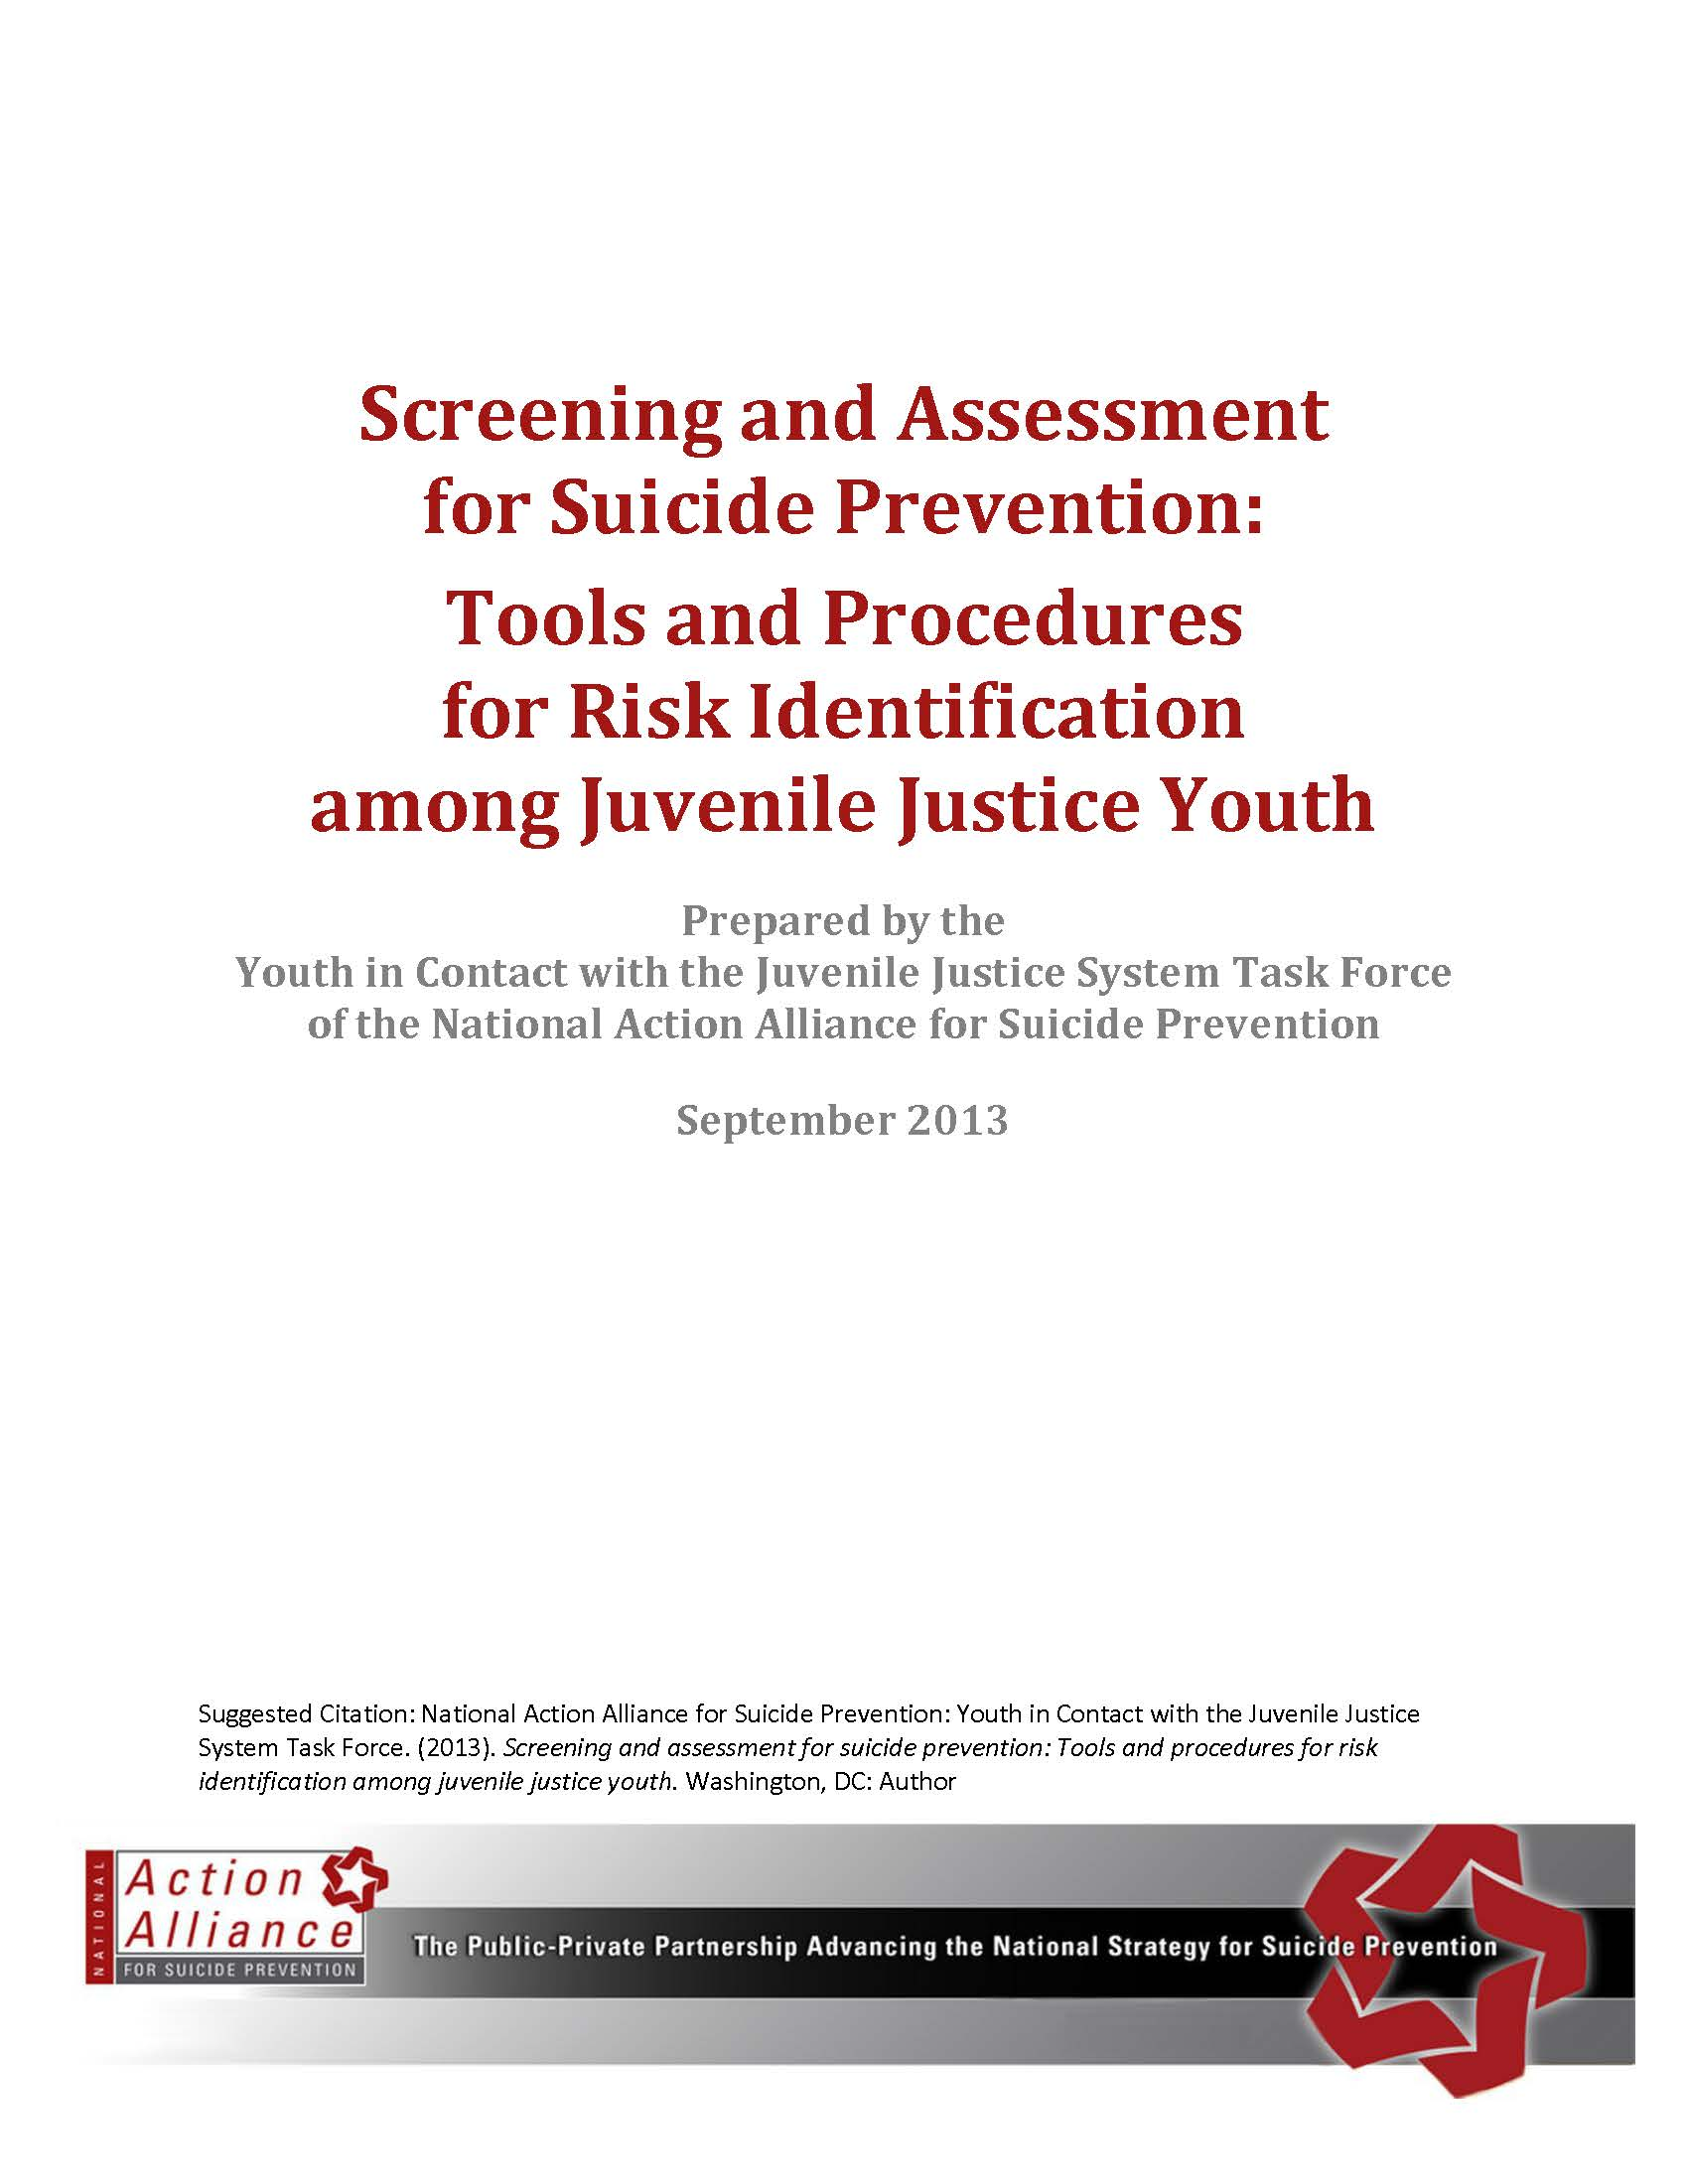 Screening and Assessment for Suicide Prevention: Tools and Procedures for Risk Identification and Risk Reduction among Juvenile Justice Youth